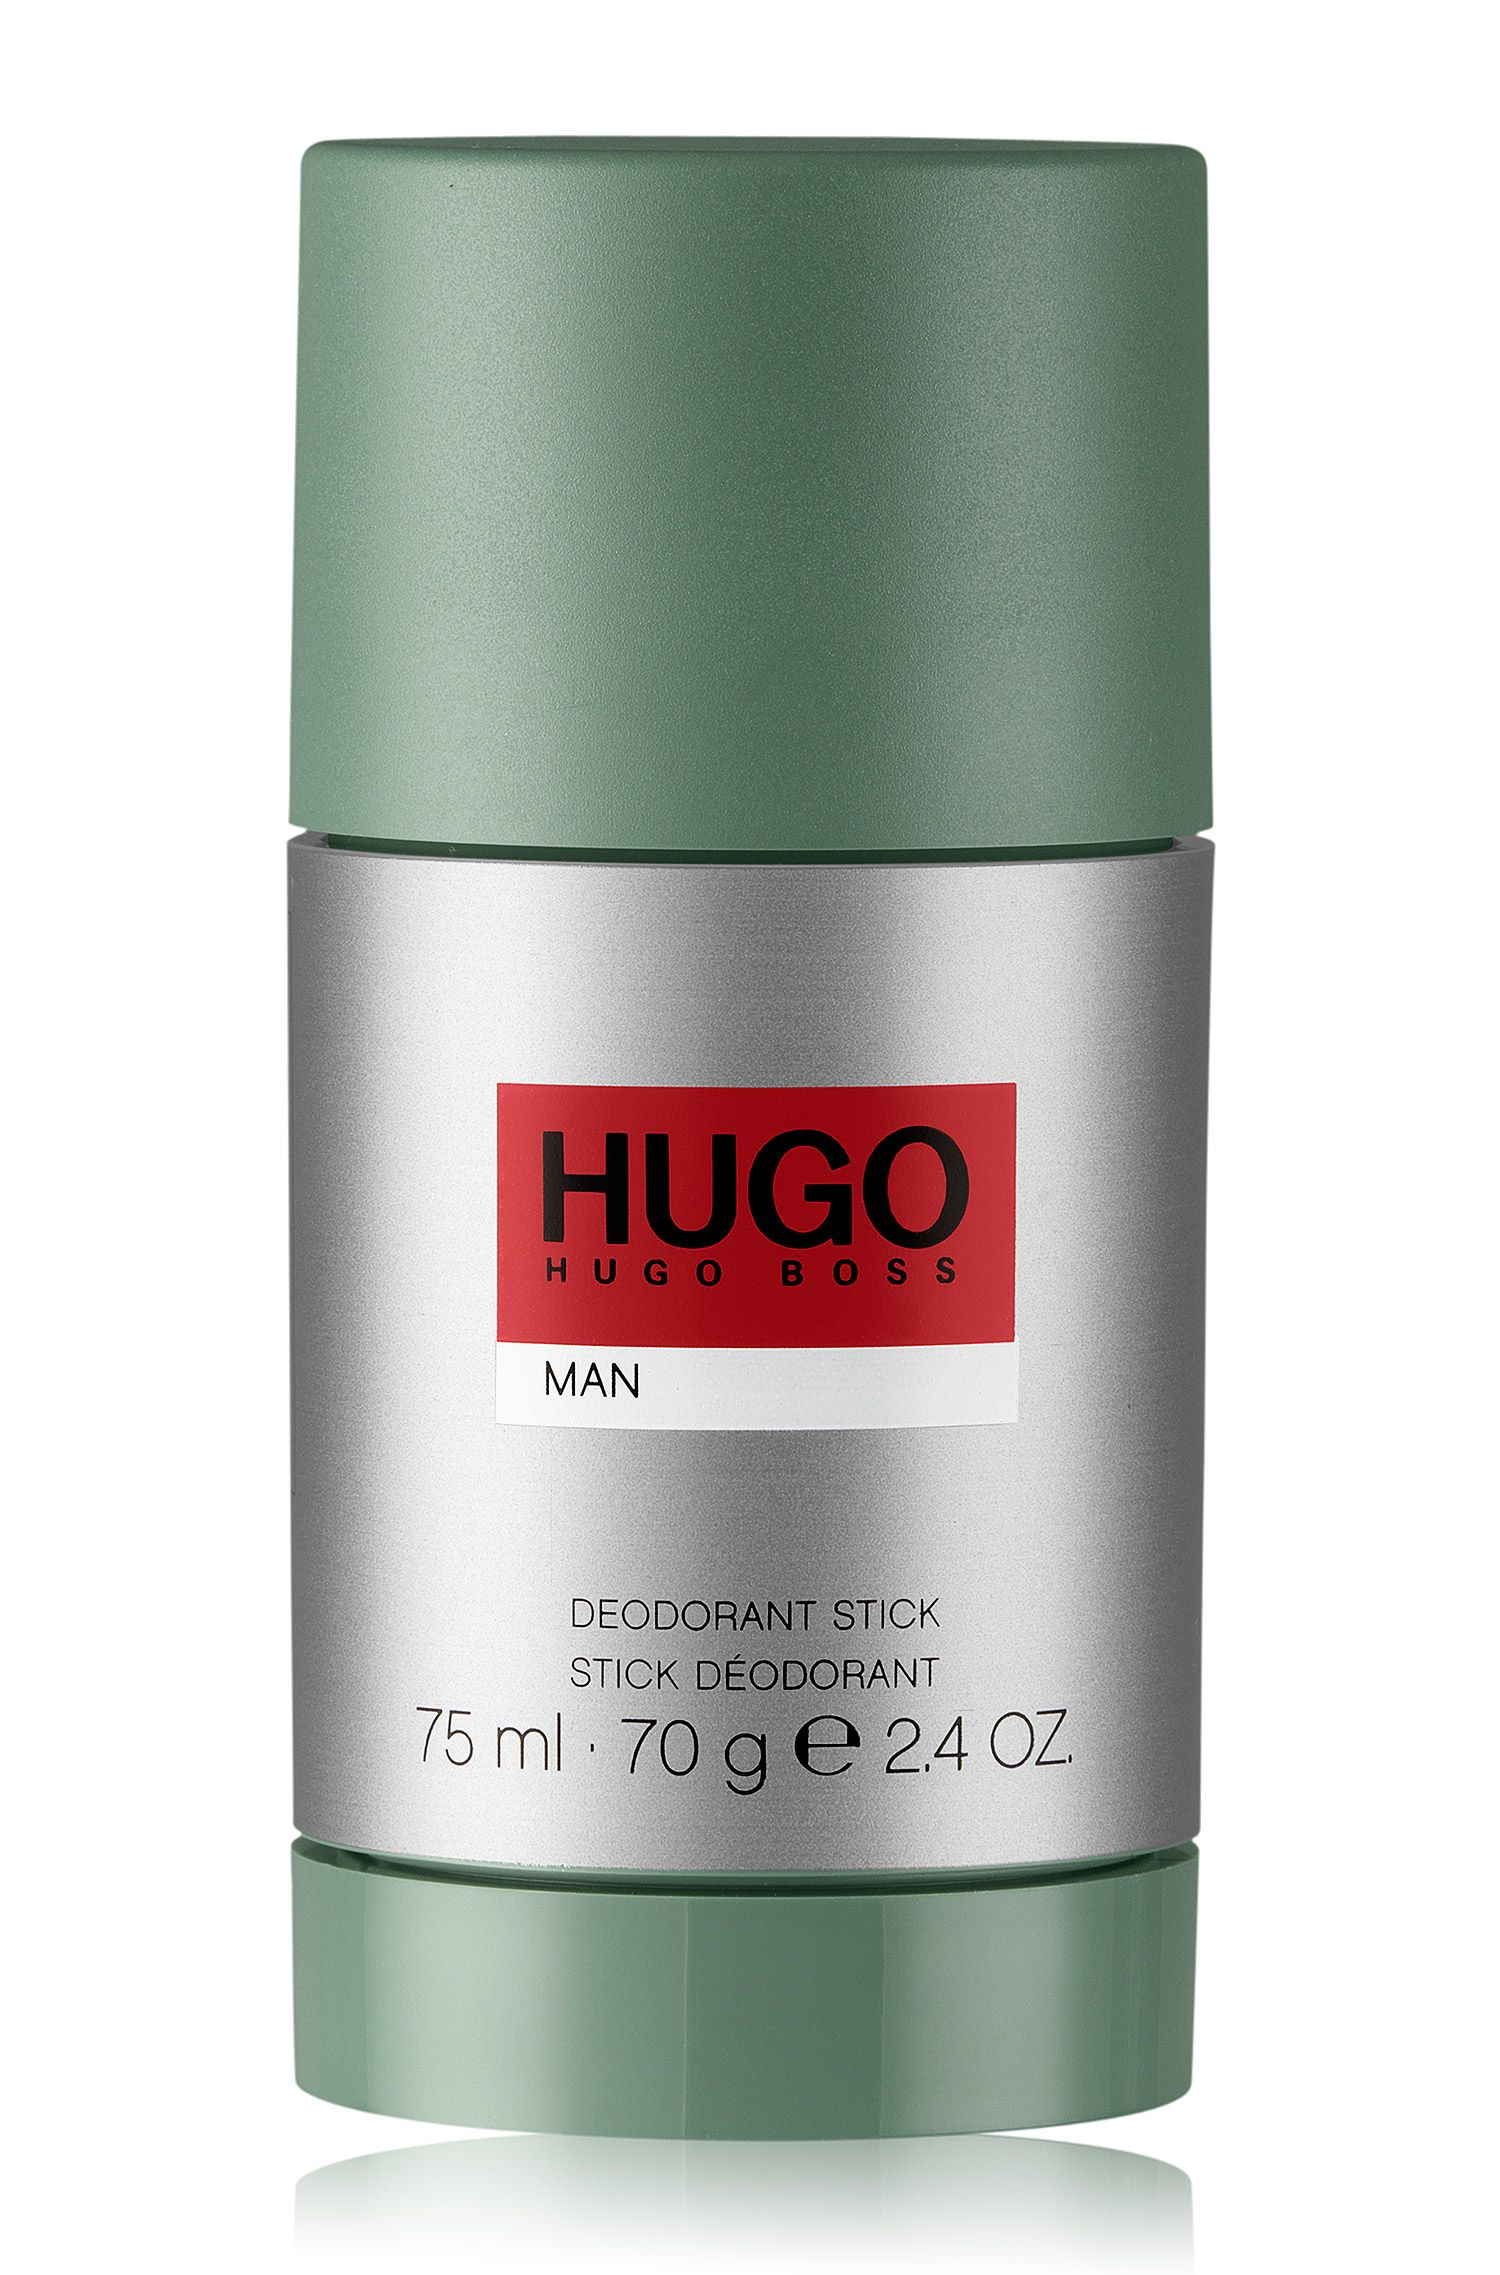 HUGO Man Deo Stick 75 ml